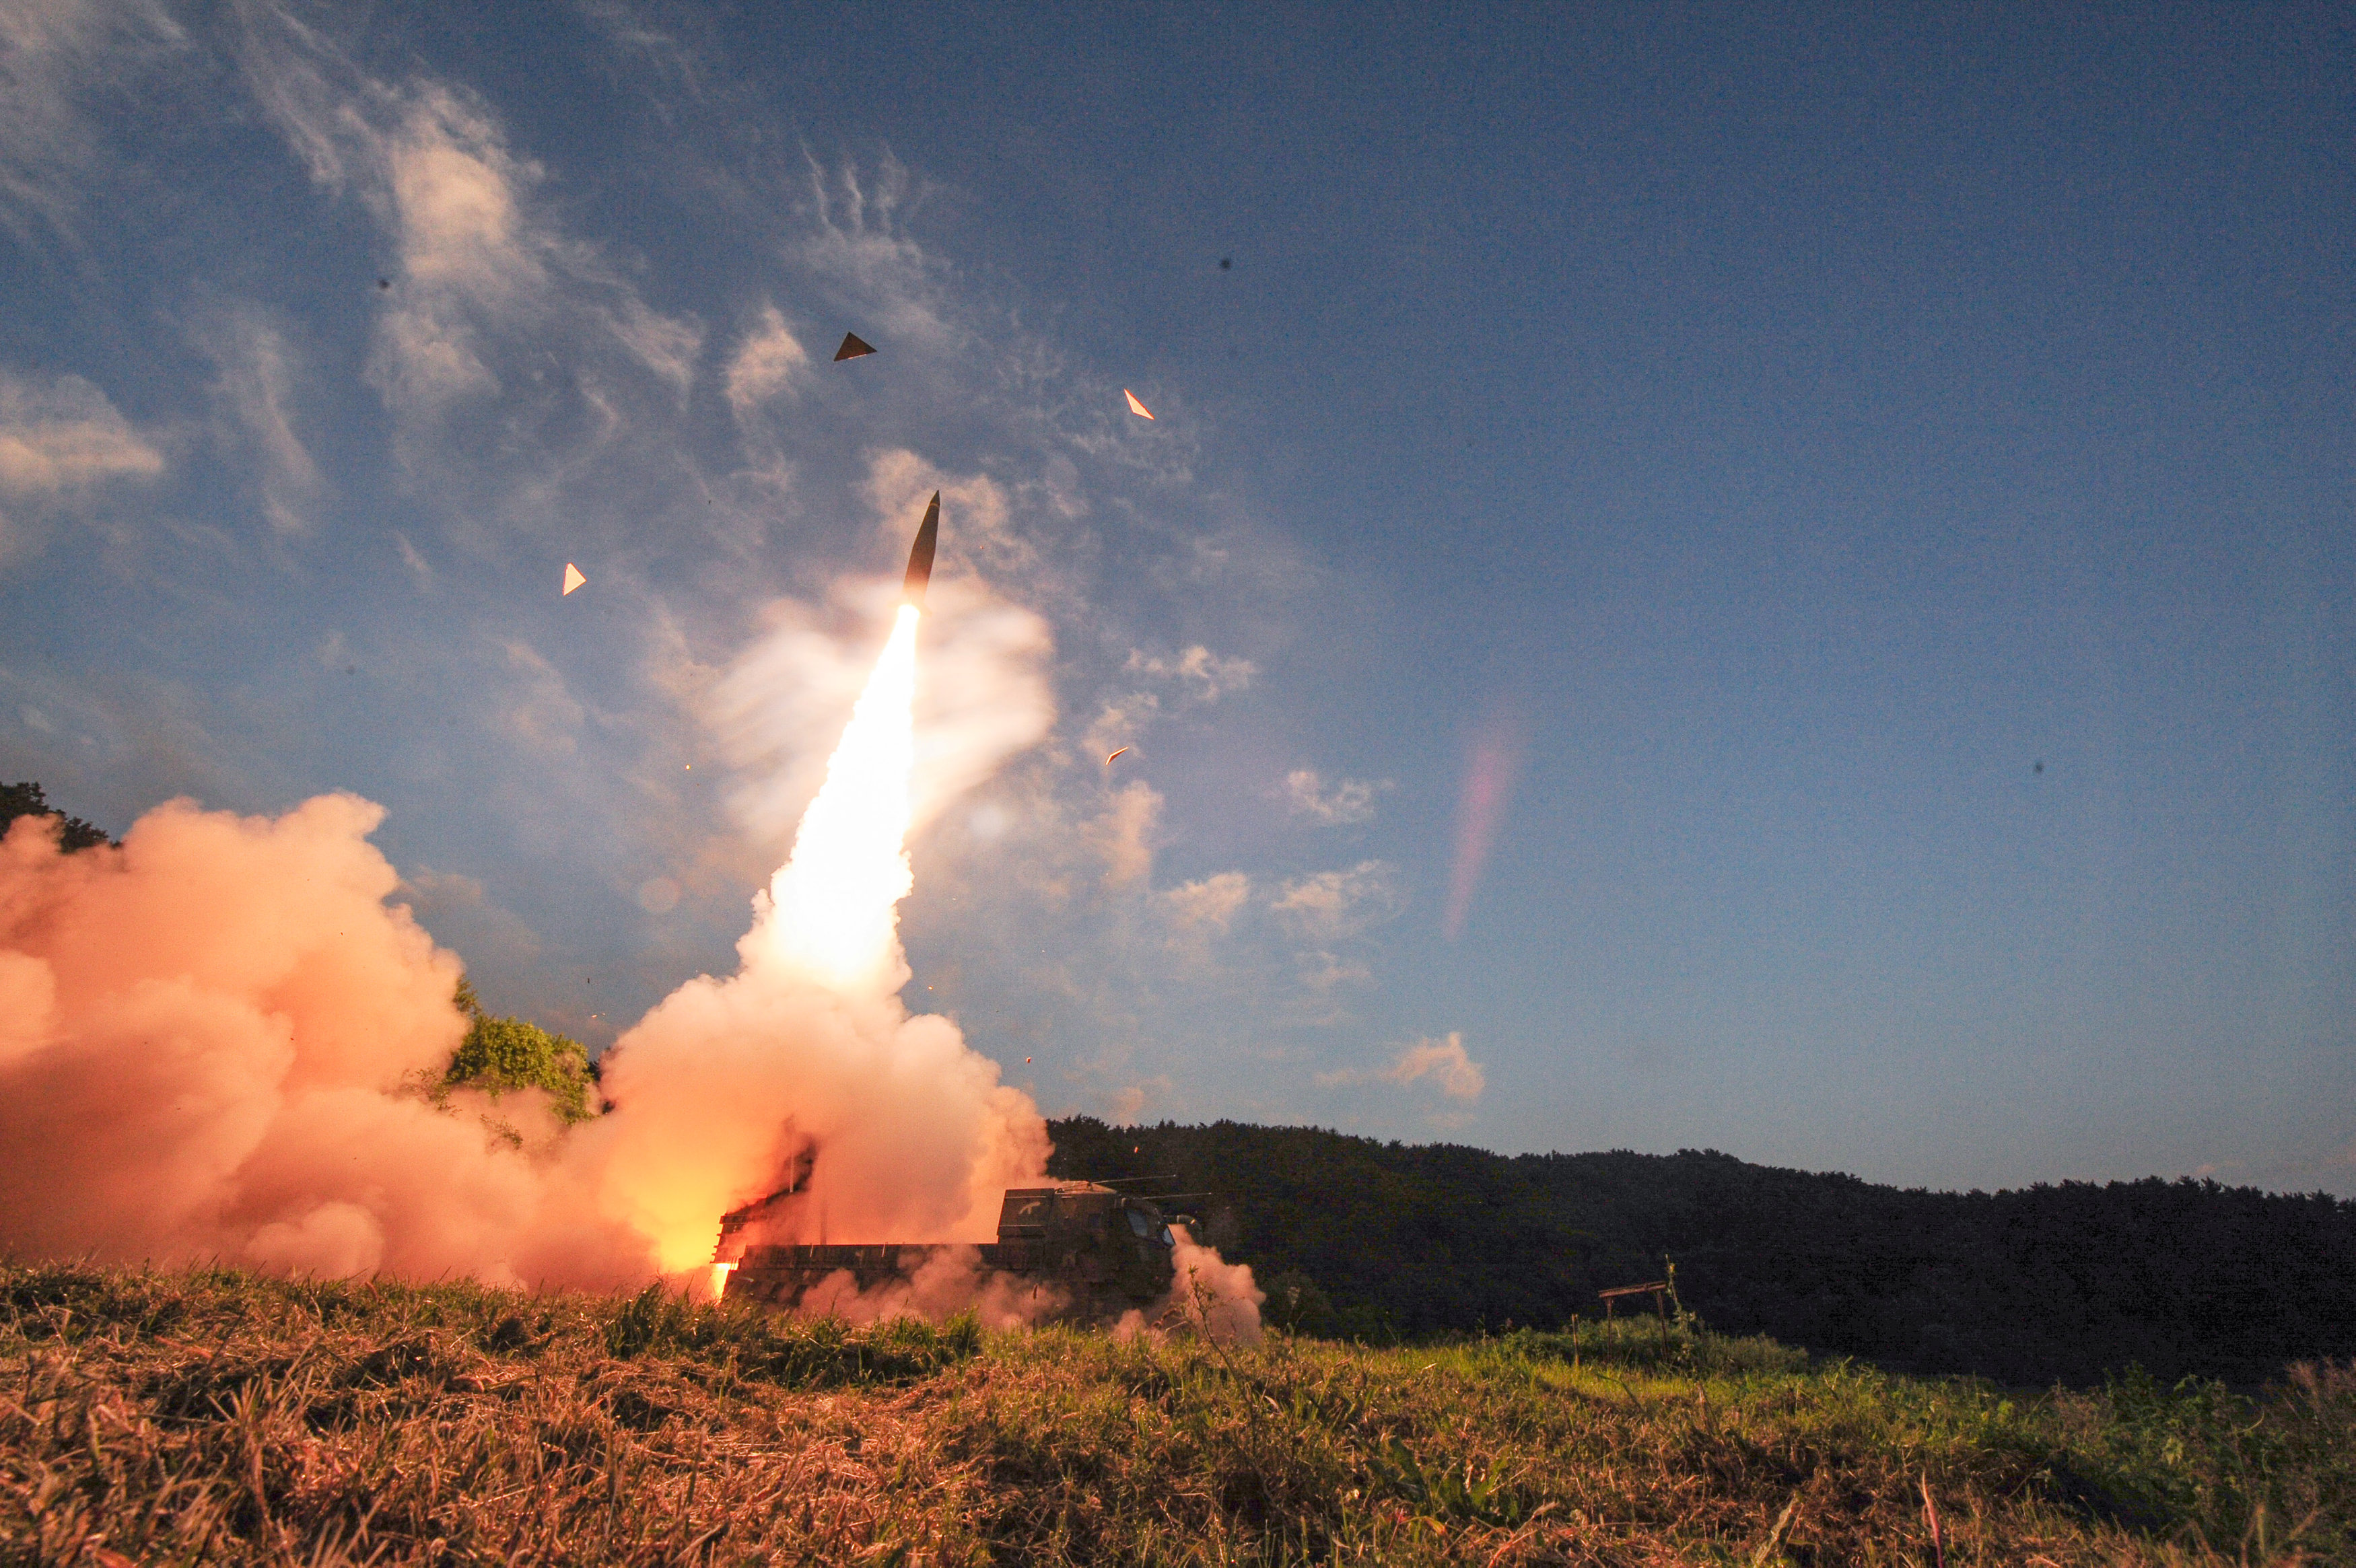 South Korean troops fire Hyunmoo Missile into the waters of the East Sea at a military exercise in South Korea September 4, 2017. Defense Ministry/Yonhap/via REUTERS ATTENTION EDITORS - THIS IMAGE HAS BEEN SUPPLIED BY A THIRD PARTY. SOUTH KOREA OUT. NO RESALES. NO ARCHIVE.